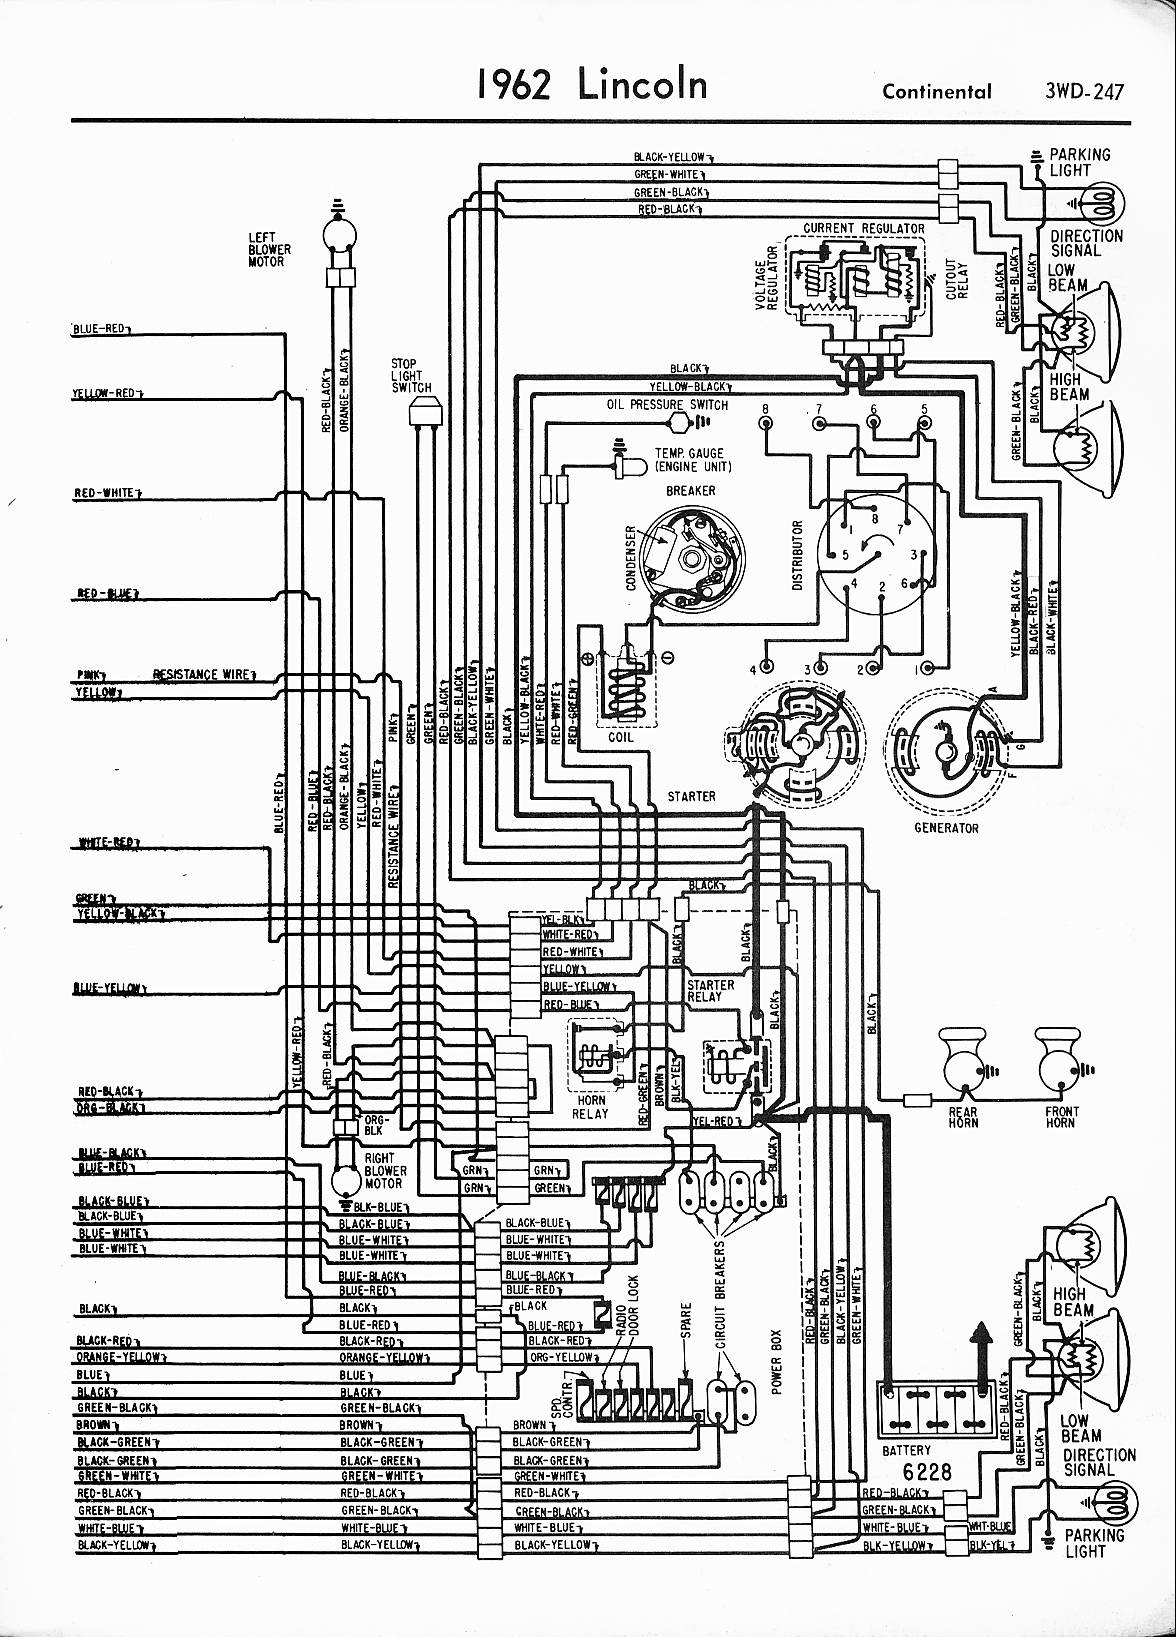 62 lincoln window wiring diagram data wiring diagrams u2022 rh naopak co Lincoln Wiring Diagrams Online 1965 lincoln continental wiring diagram